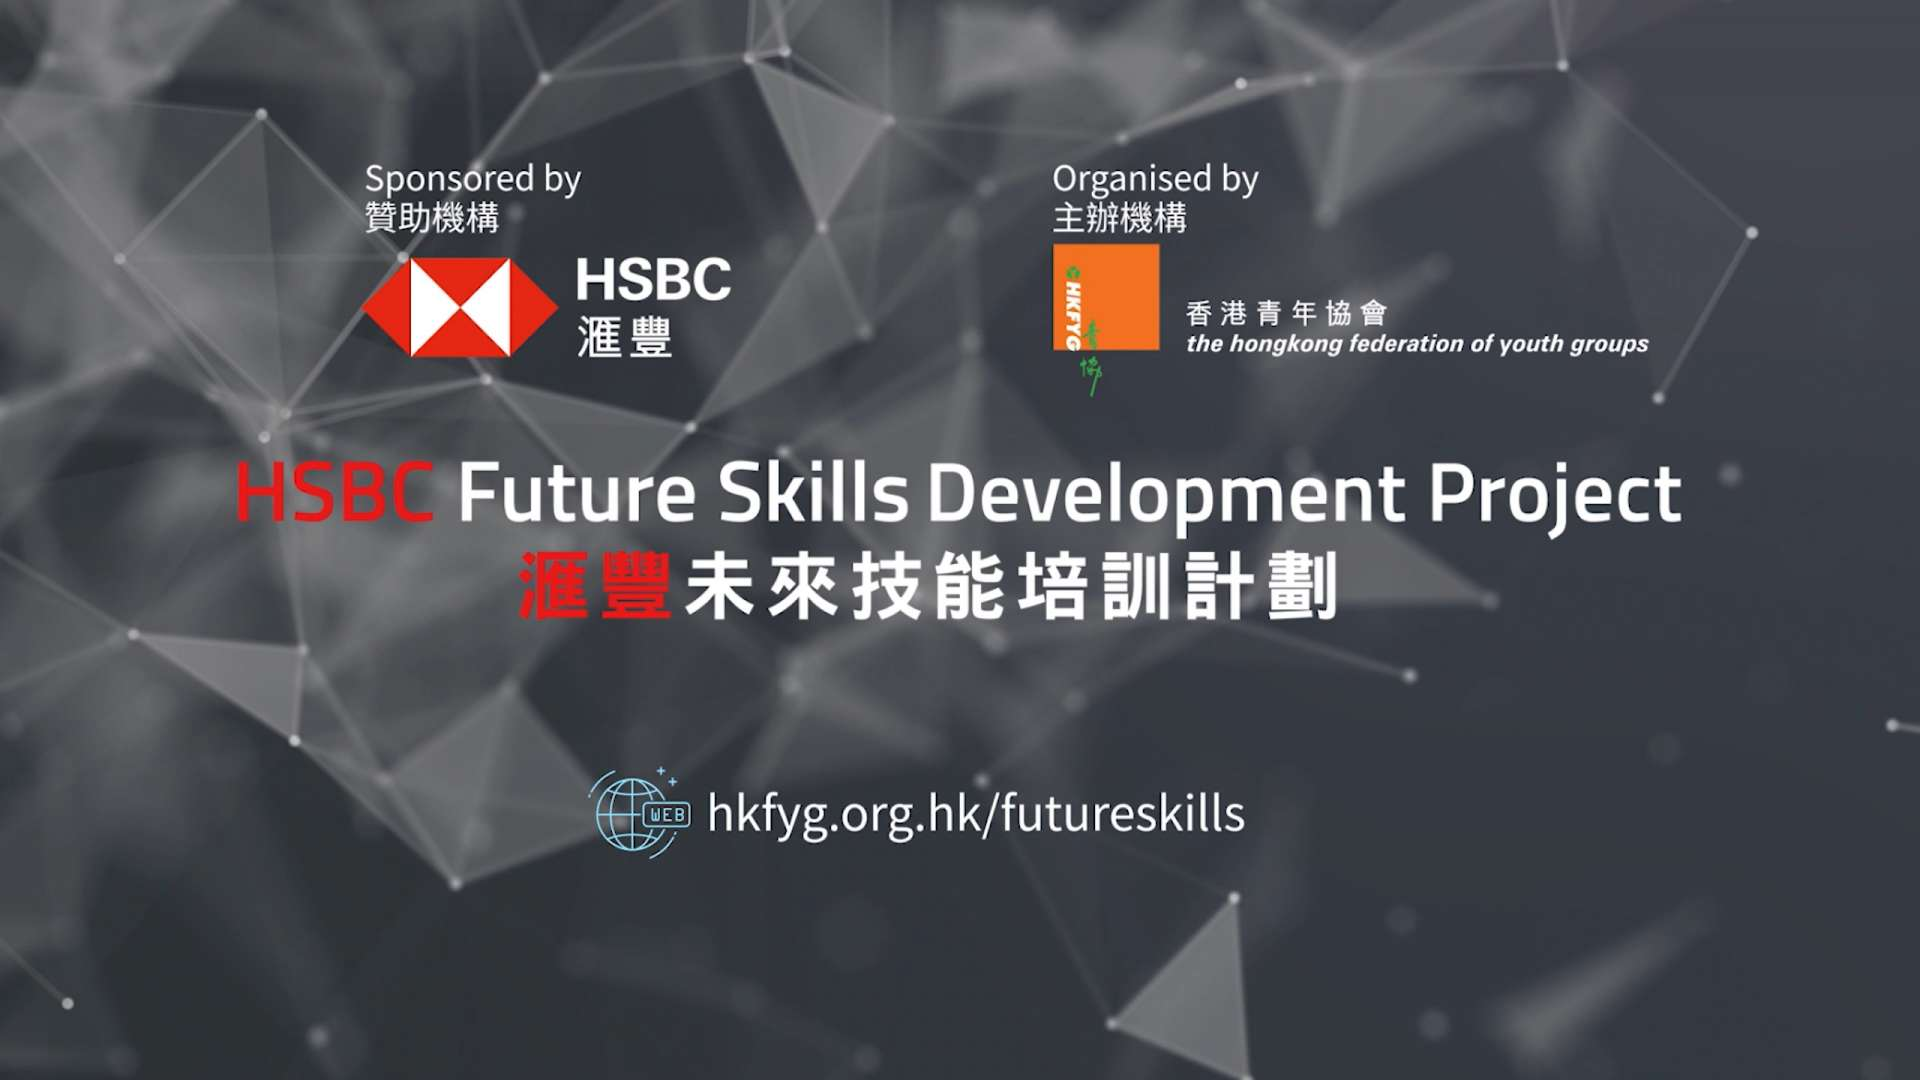 The HKFYG X HSBC Future Skills Development Project 1st Year Highlight Video